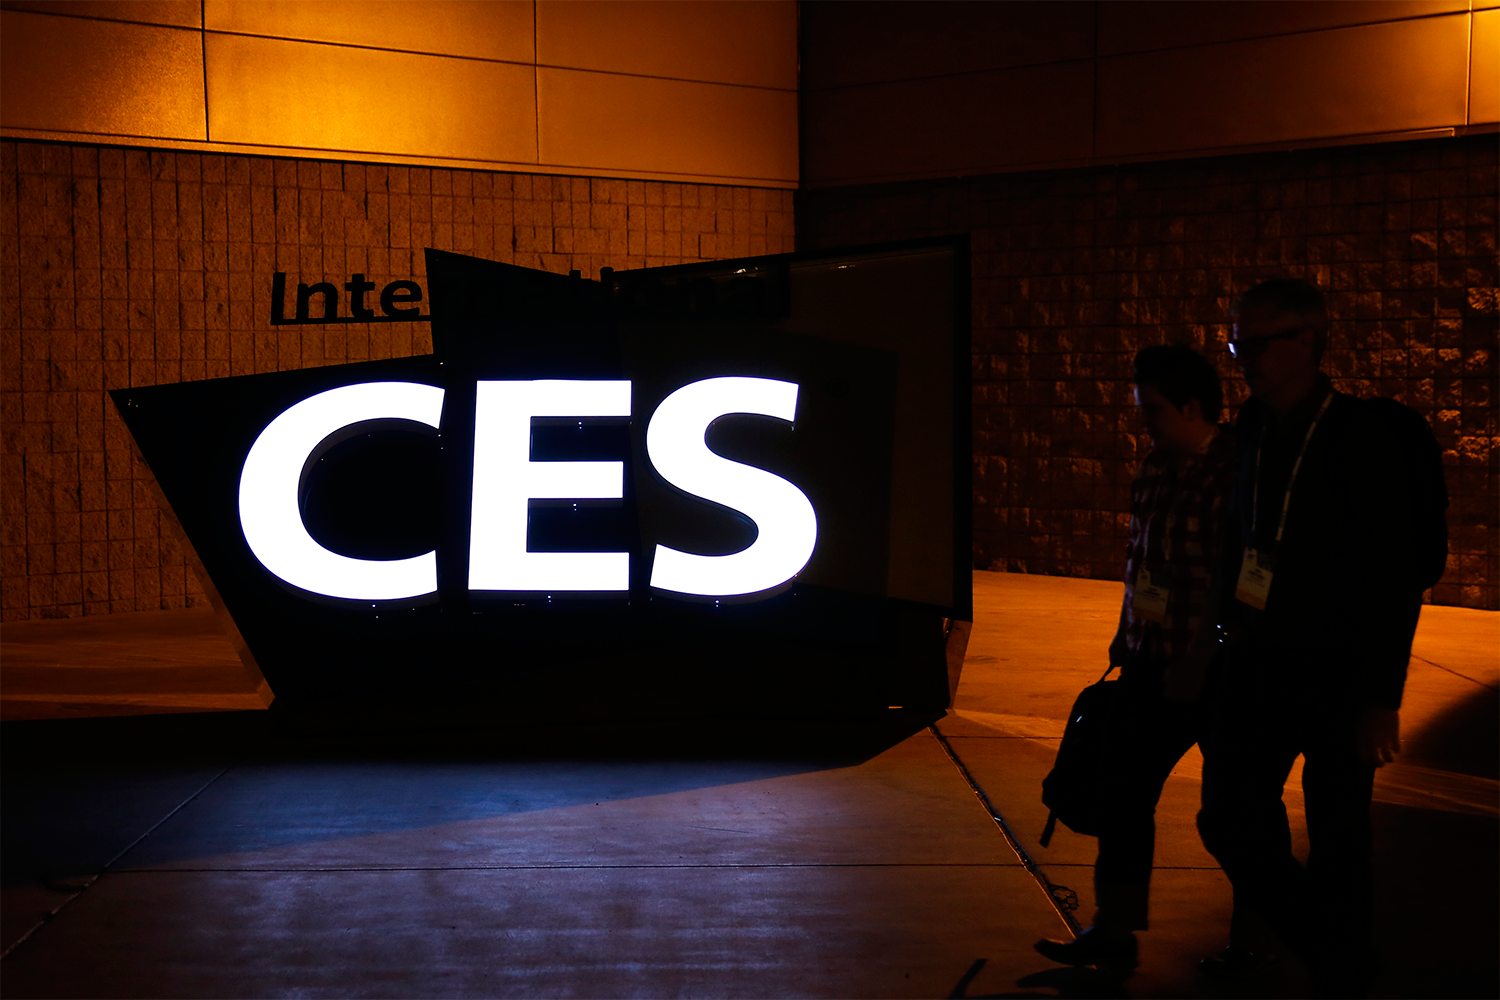 A sign at International CES 2014 in Las Vegas